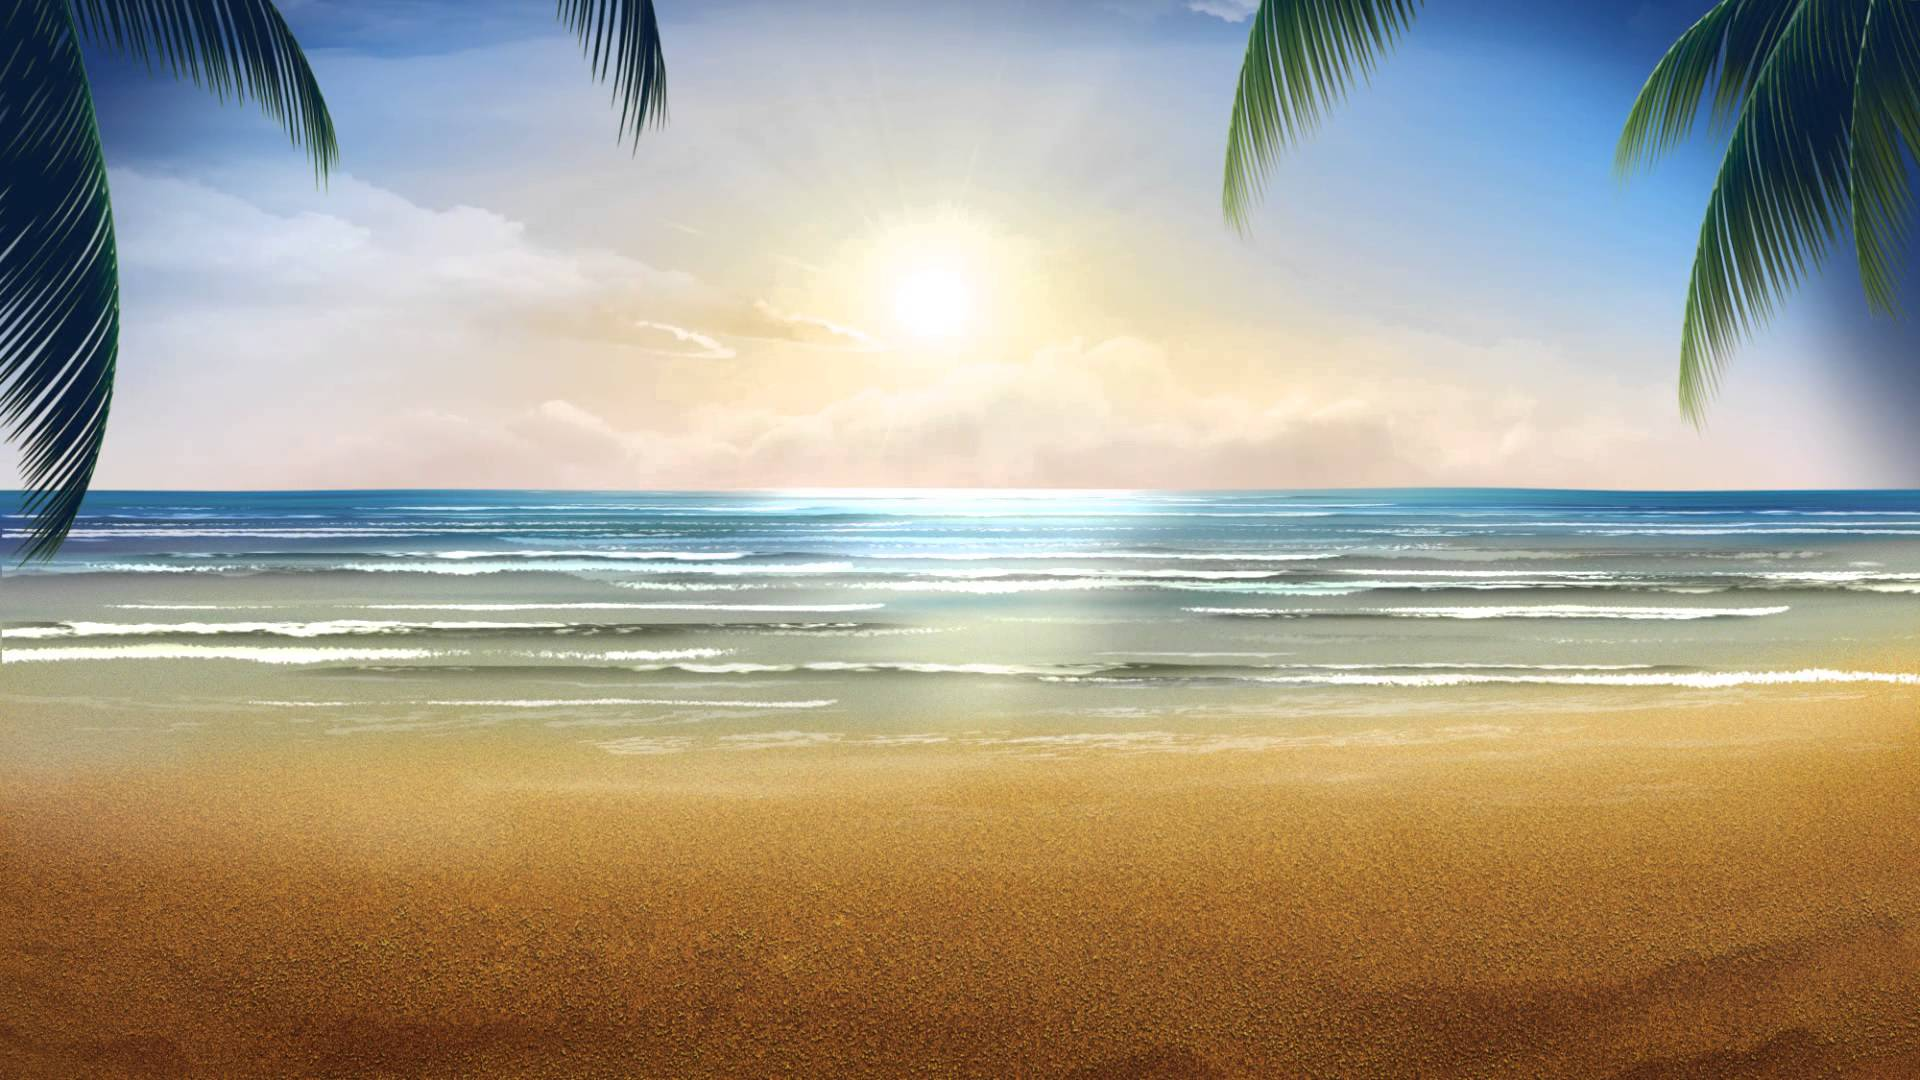 Video Background HD   Summer   Style Proshow 1920x1080